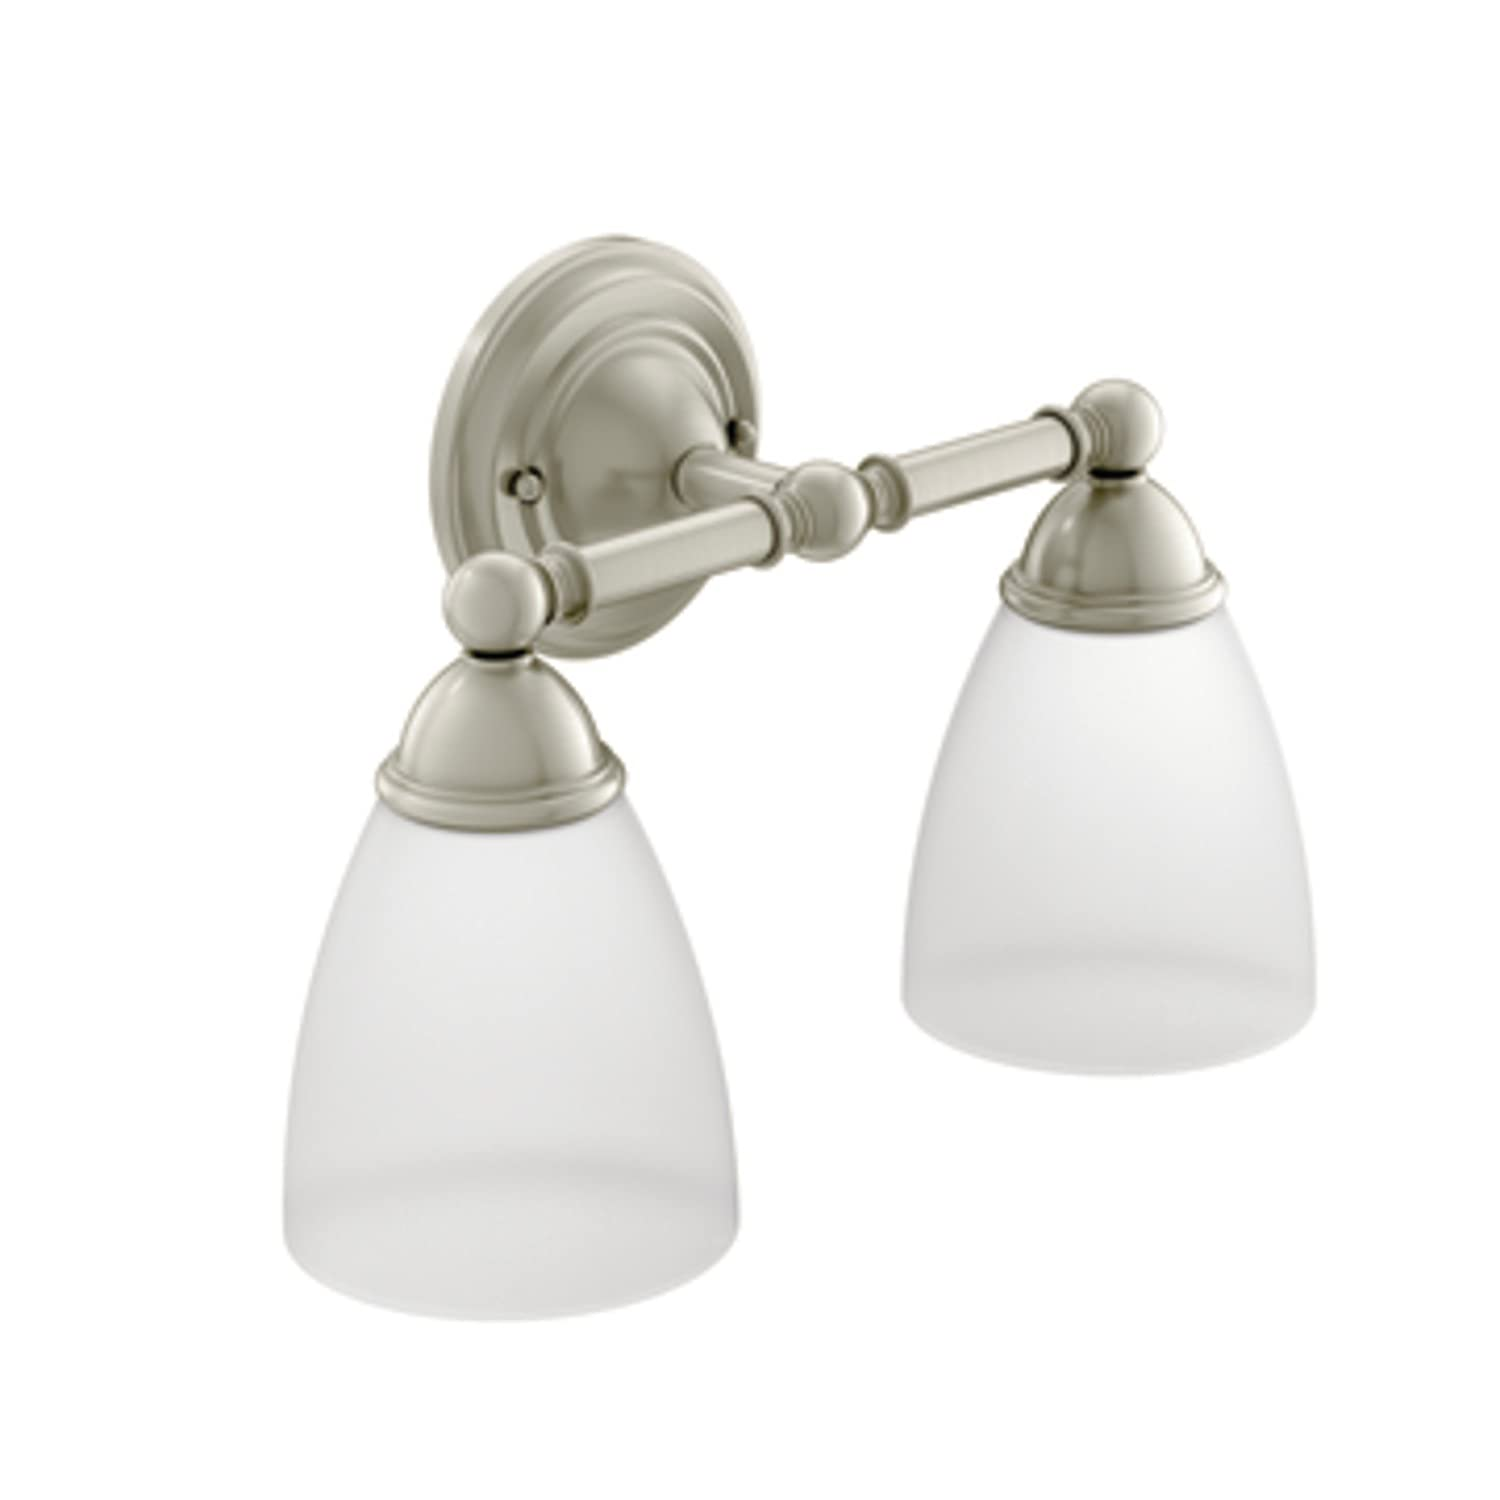 Moen YB2262CH Brantford Bath Lighting, Chrome   Bathroom Hardware    Amazon.com